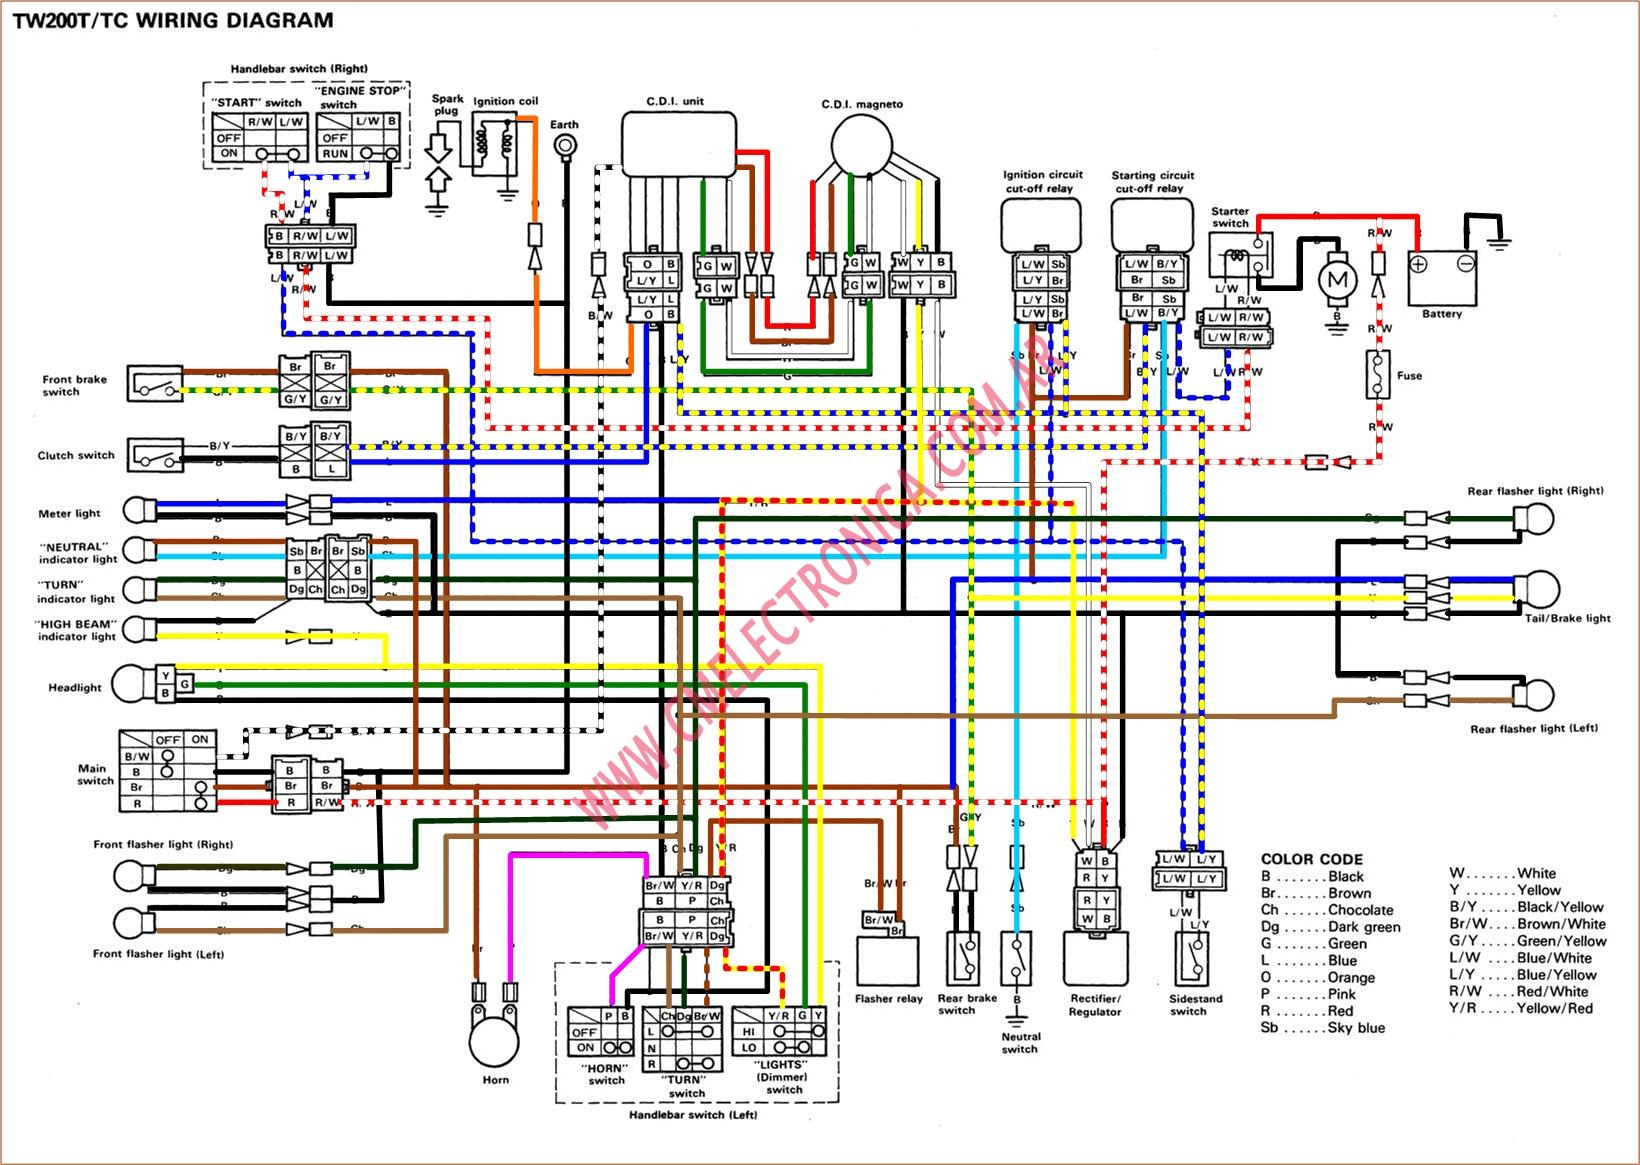 yamaha ttr 125 engine diagram yamaha wiring diagrams